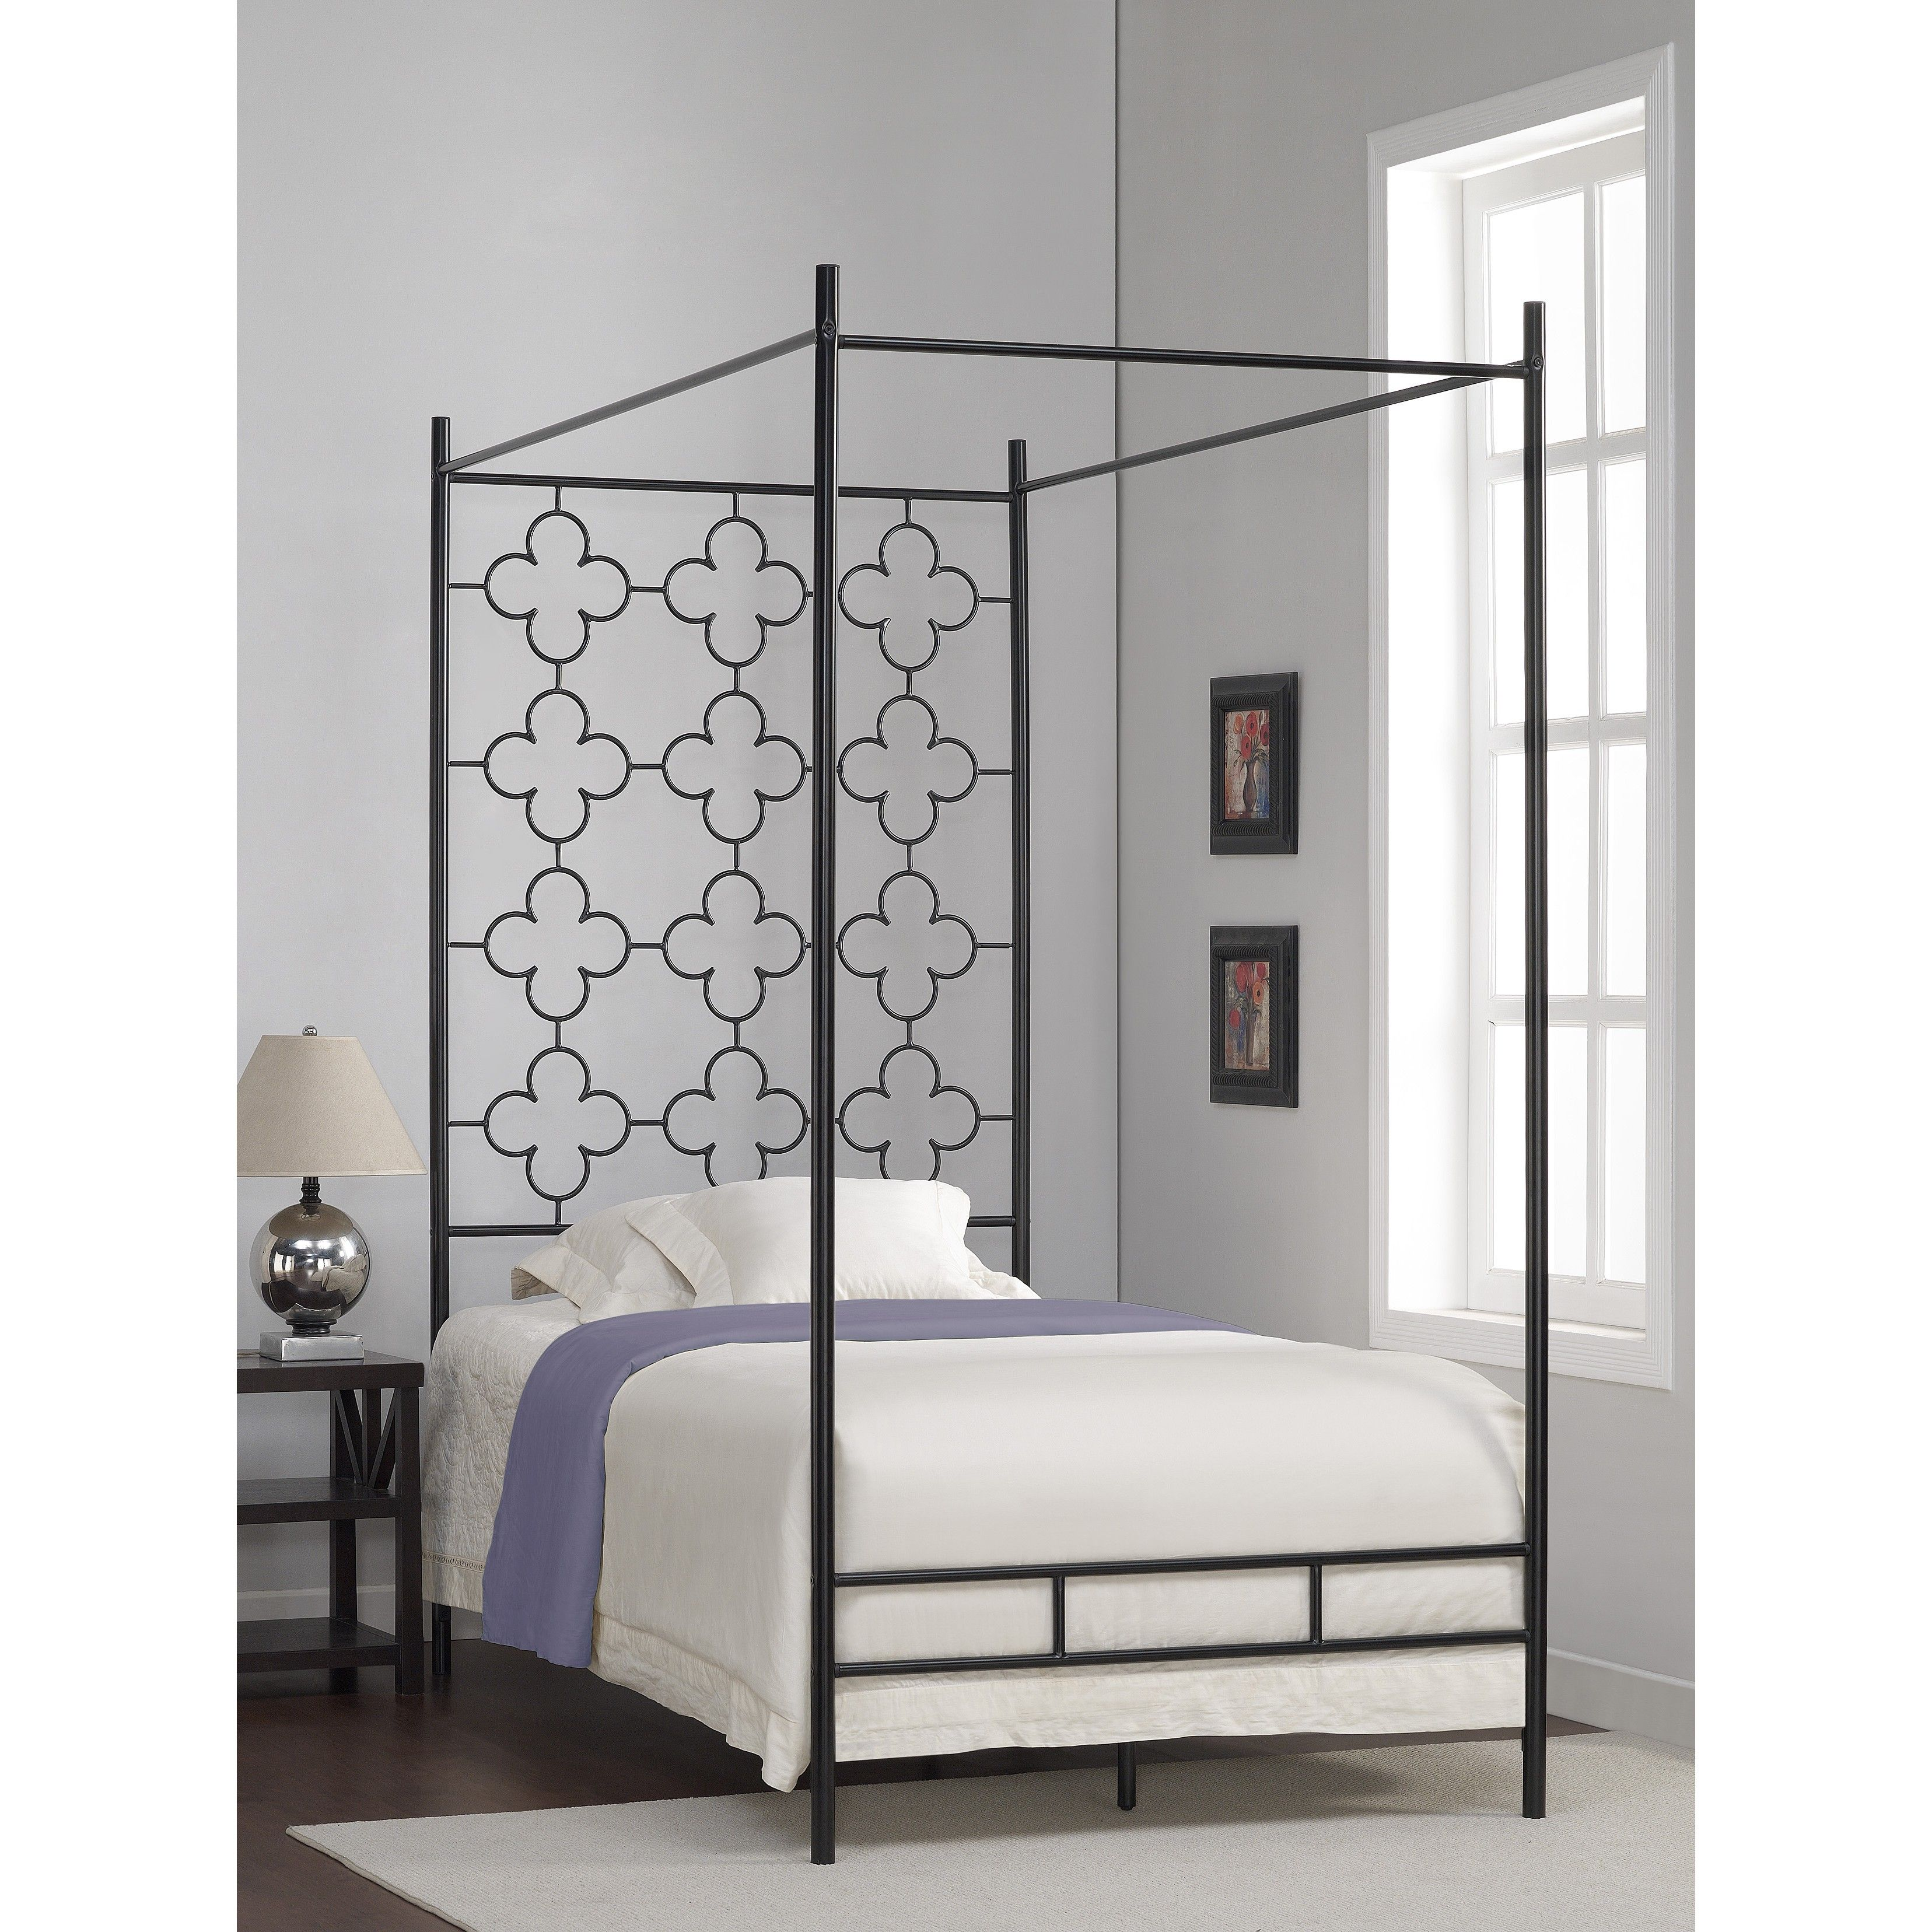 The Four Poster Bed in high gloss black head